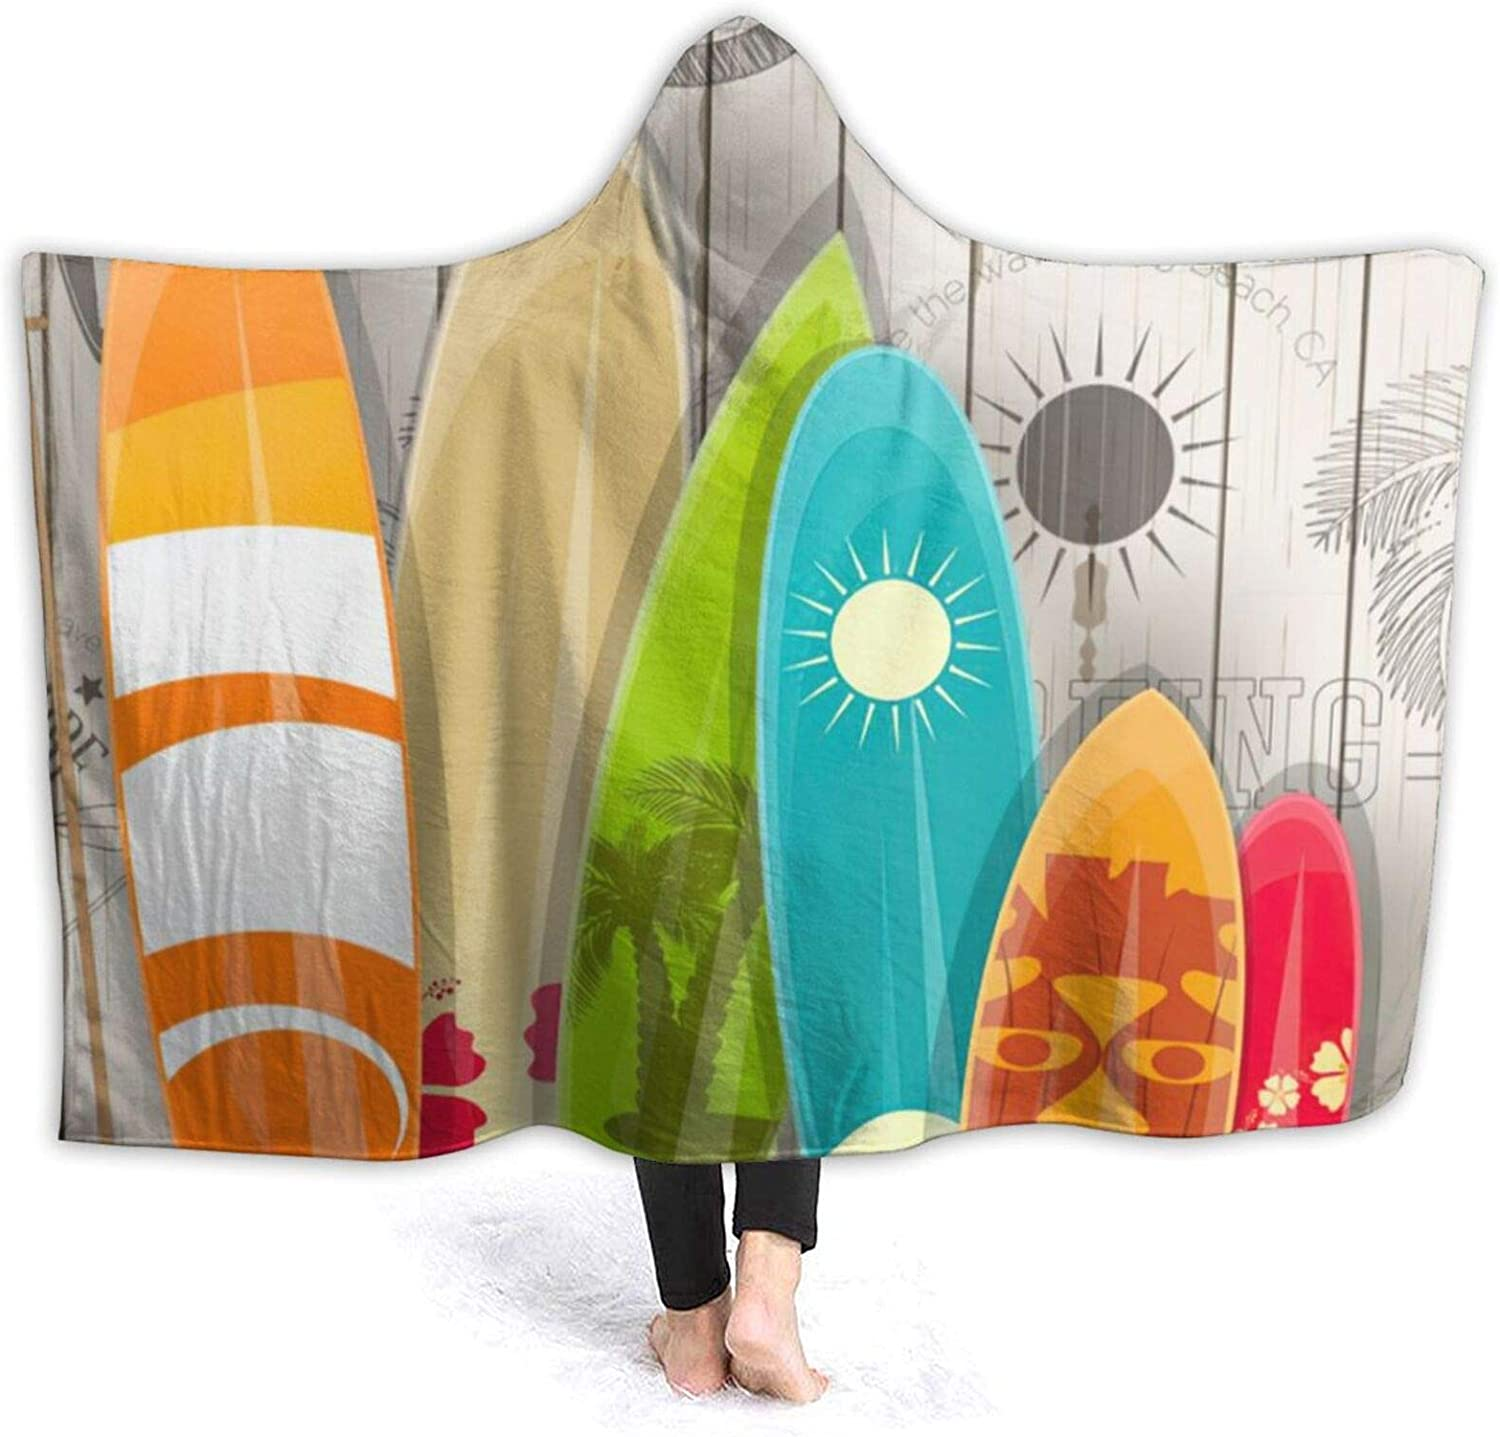 Retro Colorful Surfboard Sale Hooded Blanket Air Over item handling ☆ Conditioning